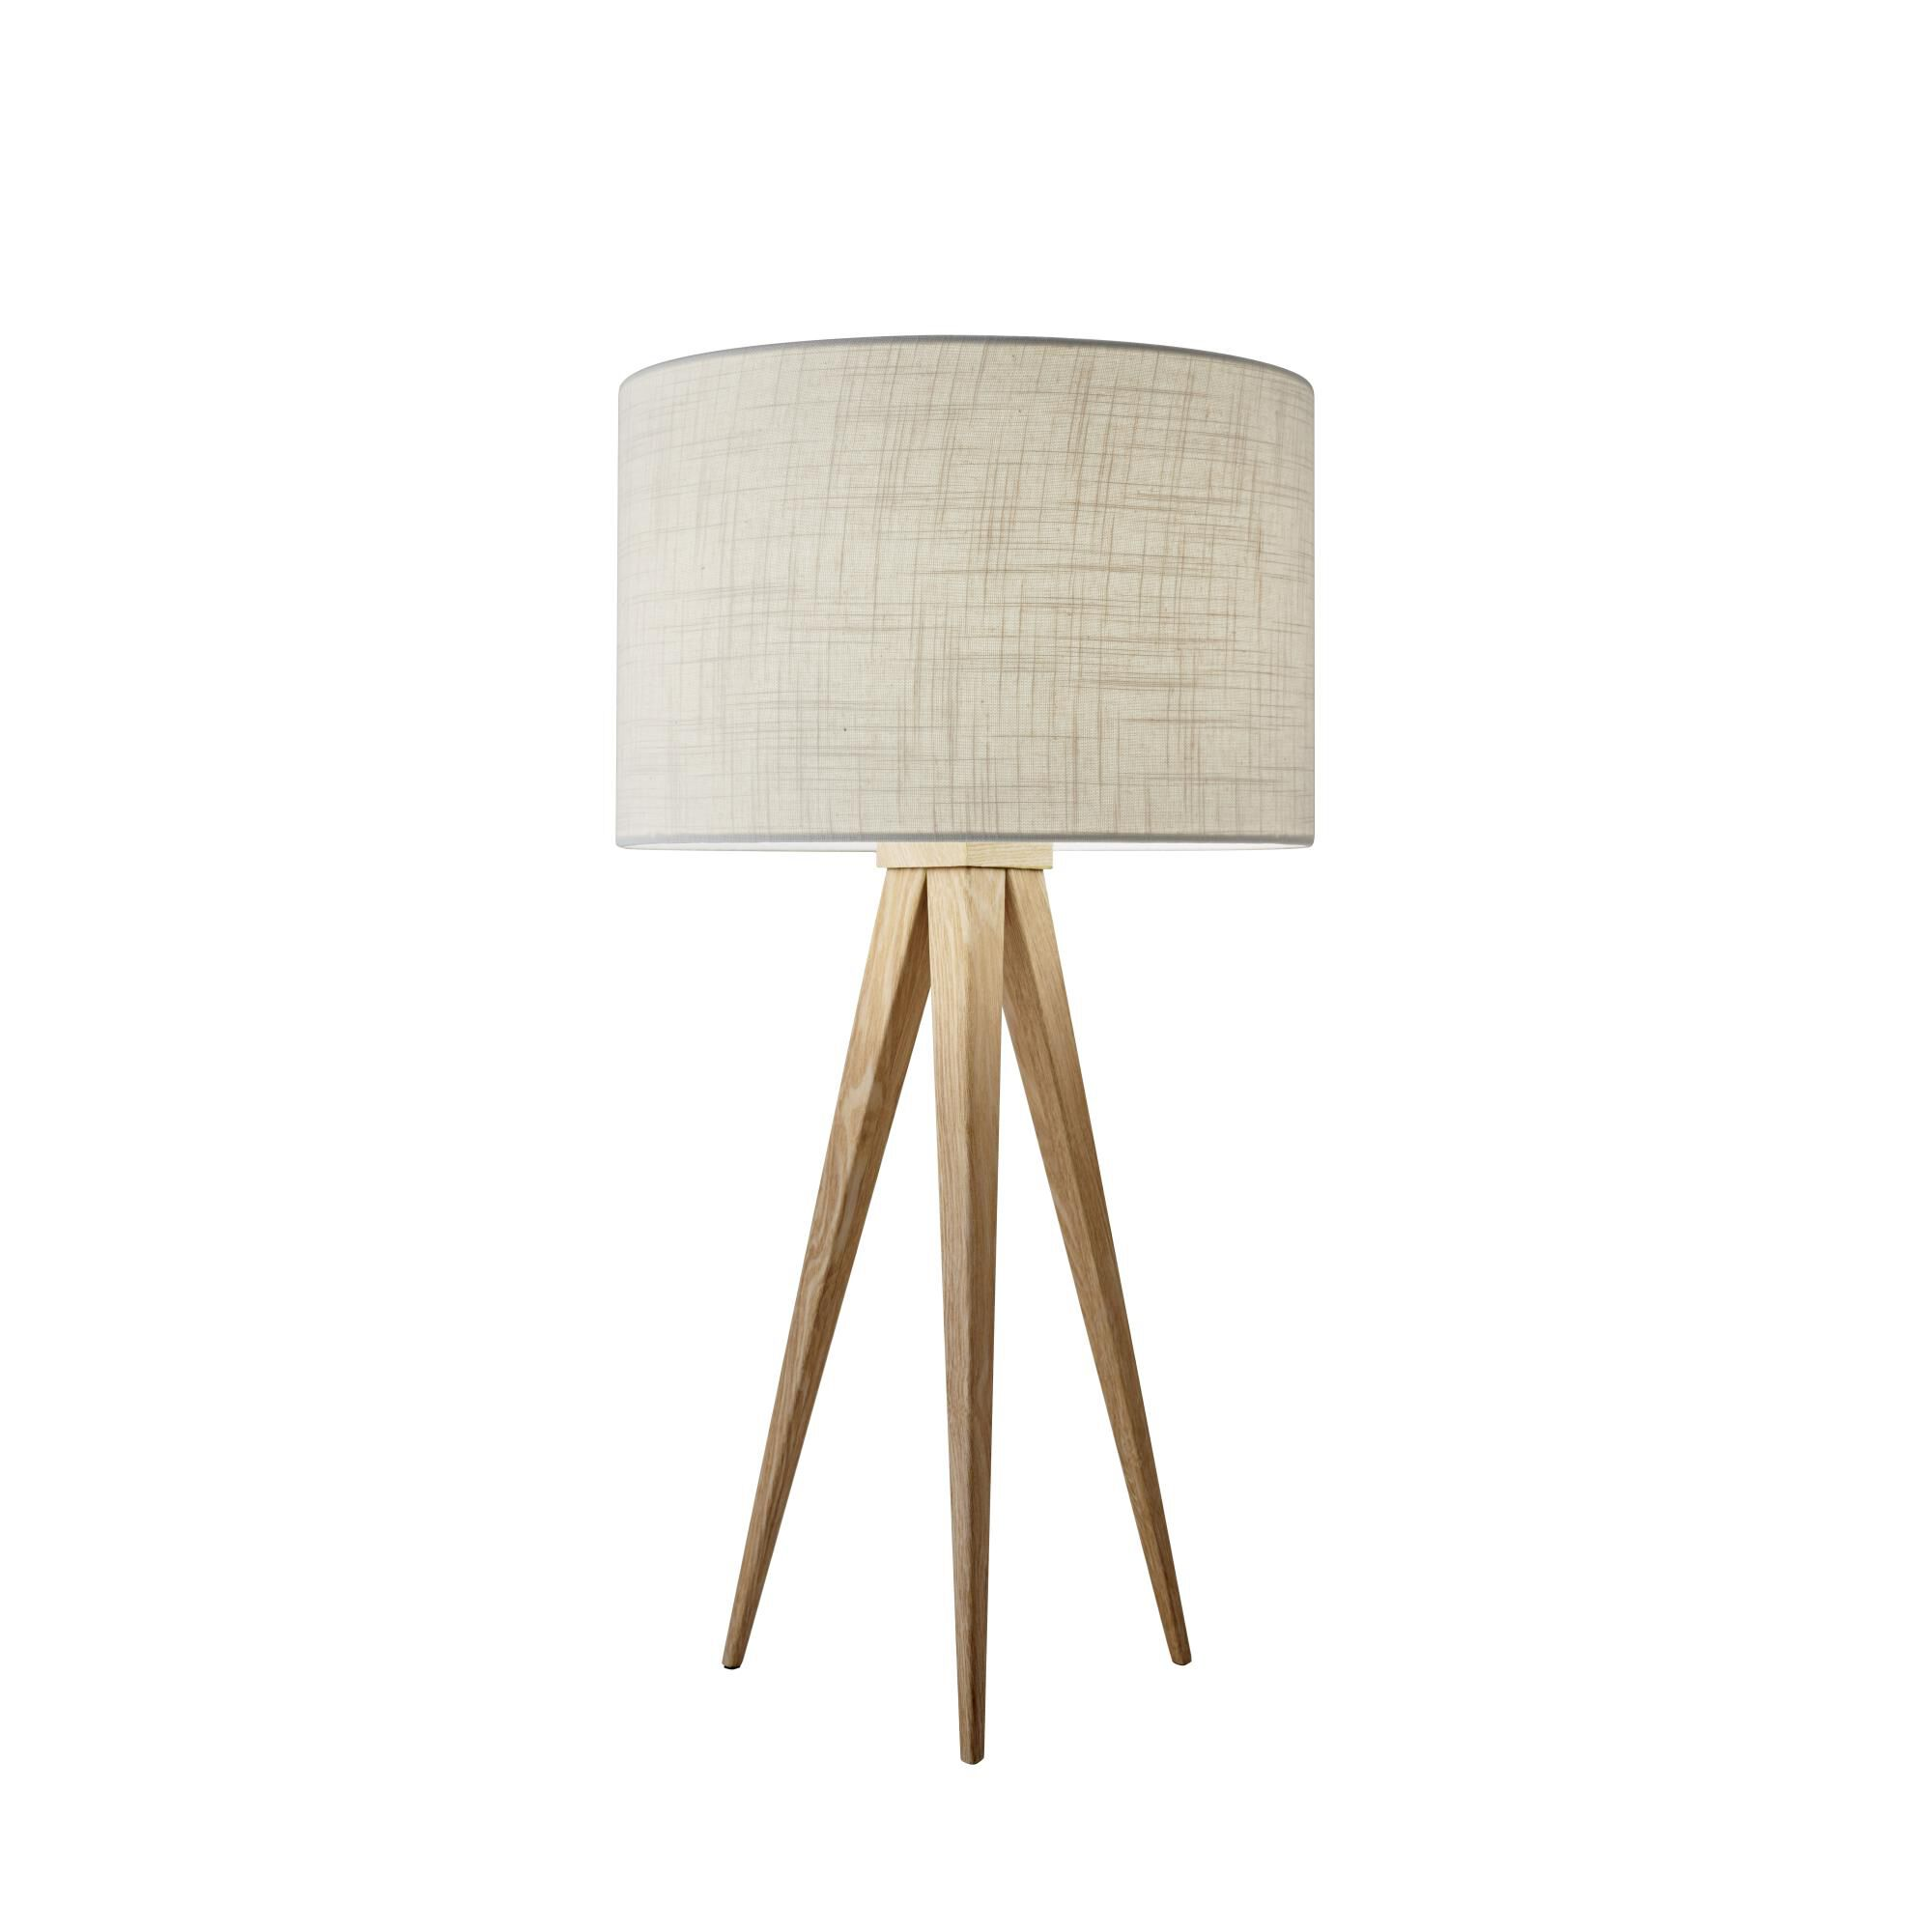 Adesso Director Table Lamp Director - 6423-12 - Modern Contemporary Table Lamp